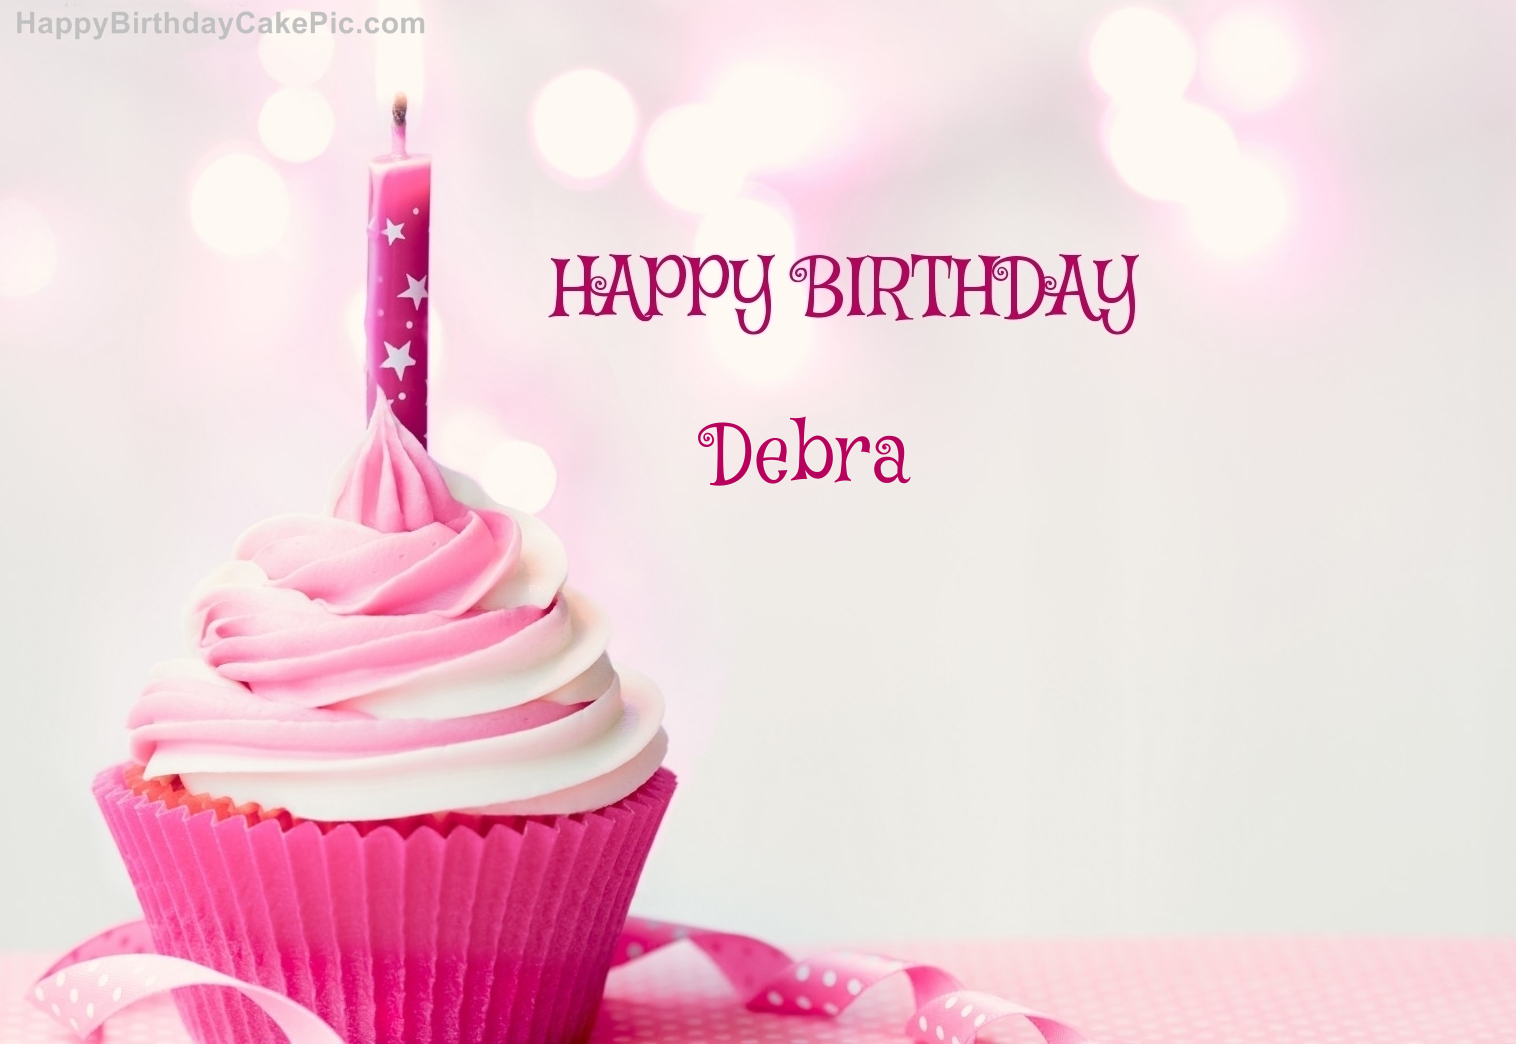 Happy Birthday Cupcake Candle Pink Cake For Debra